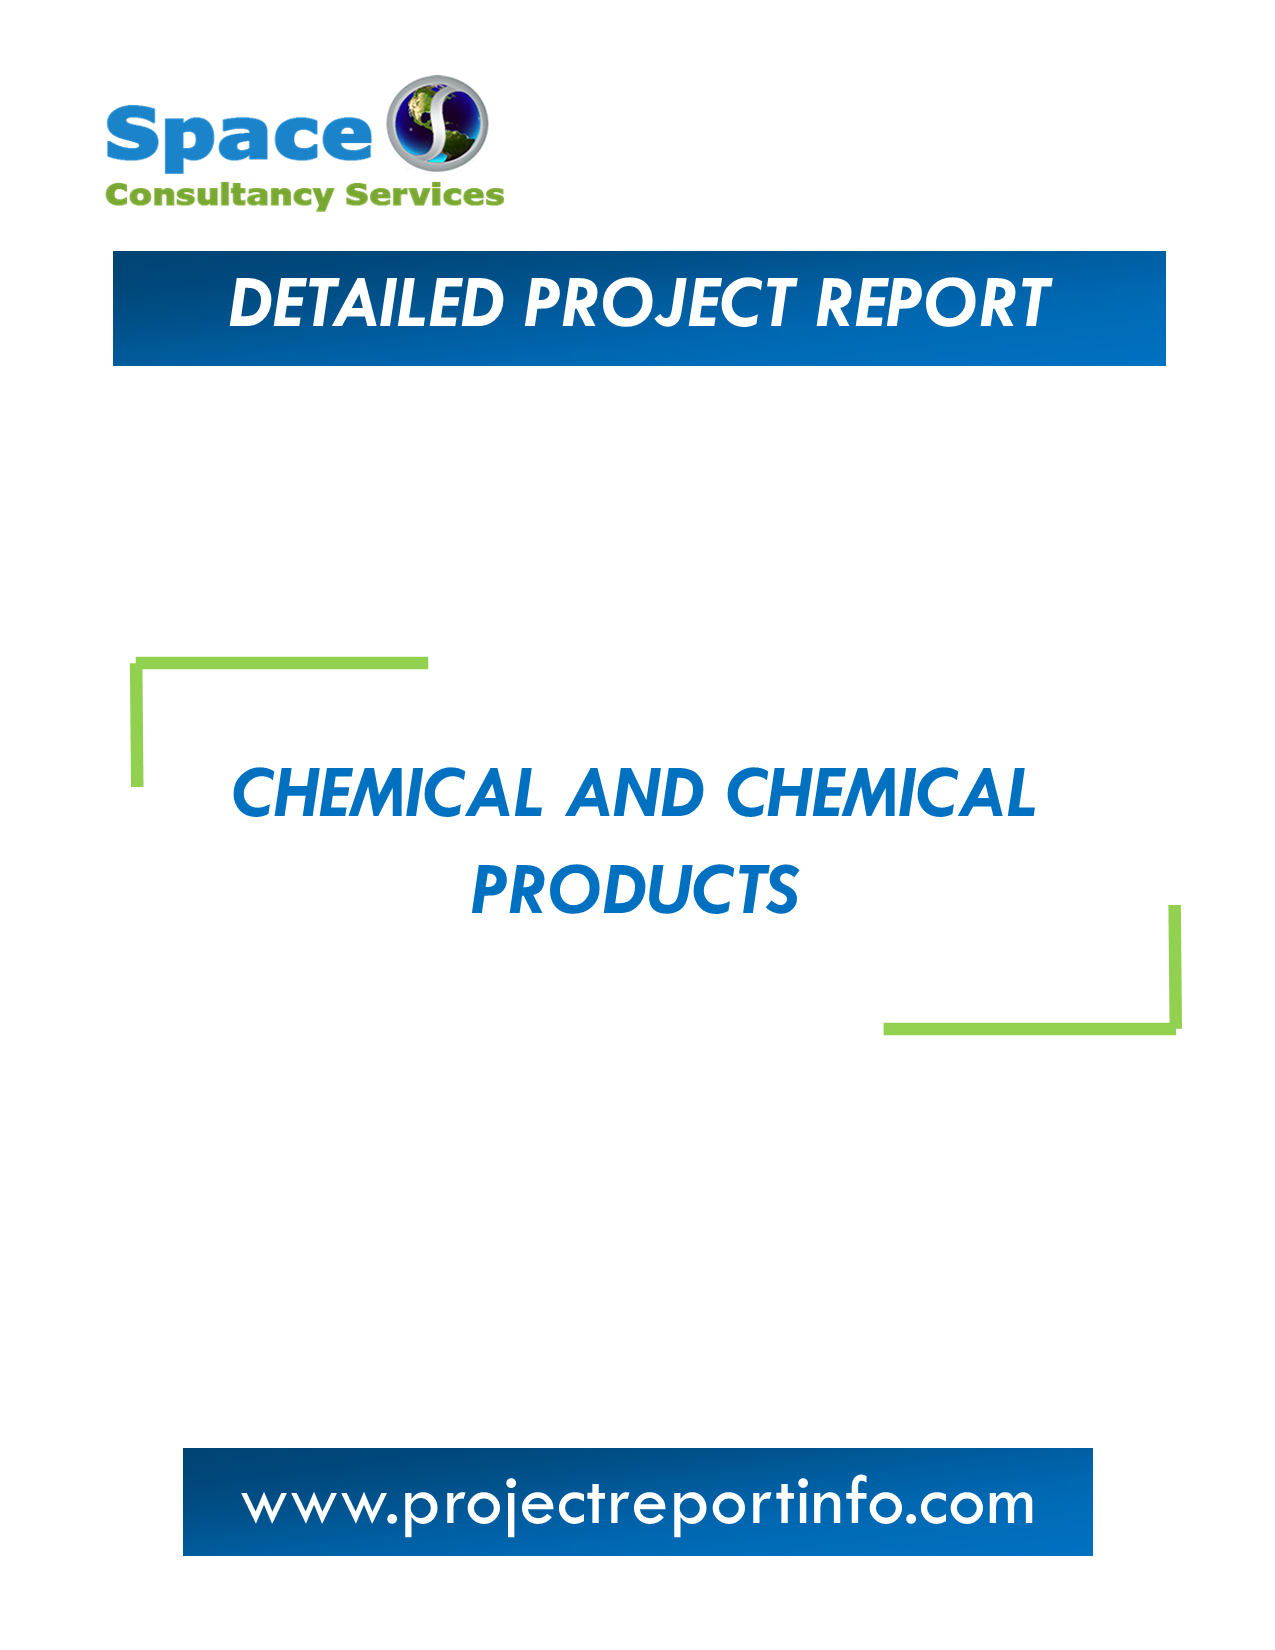 Chemical and chemical products